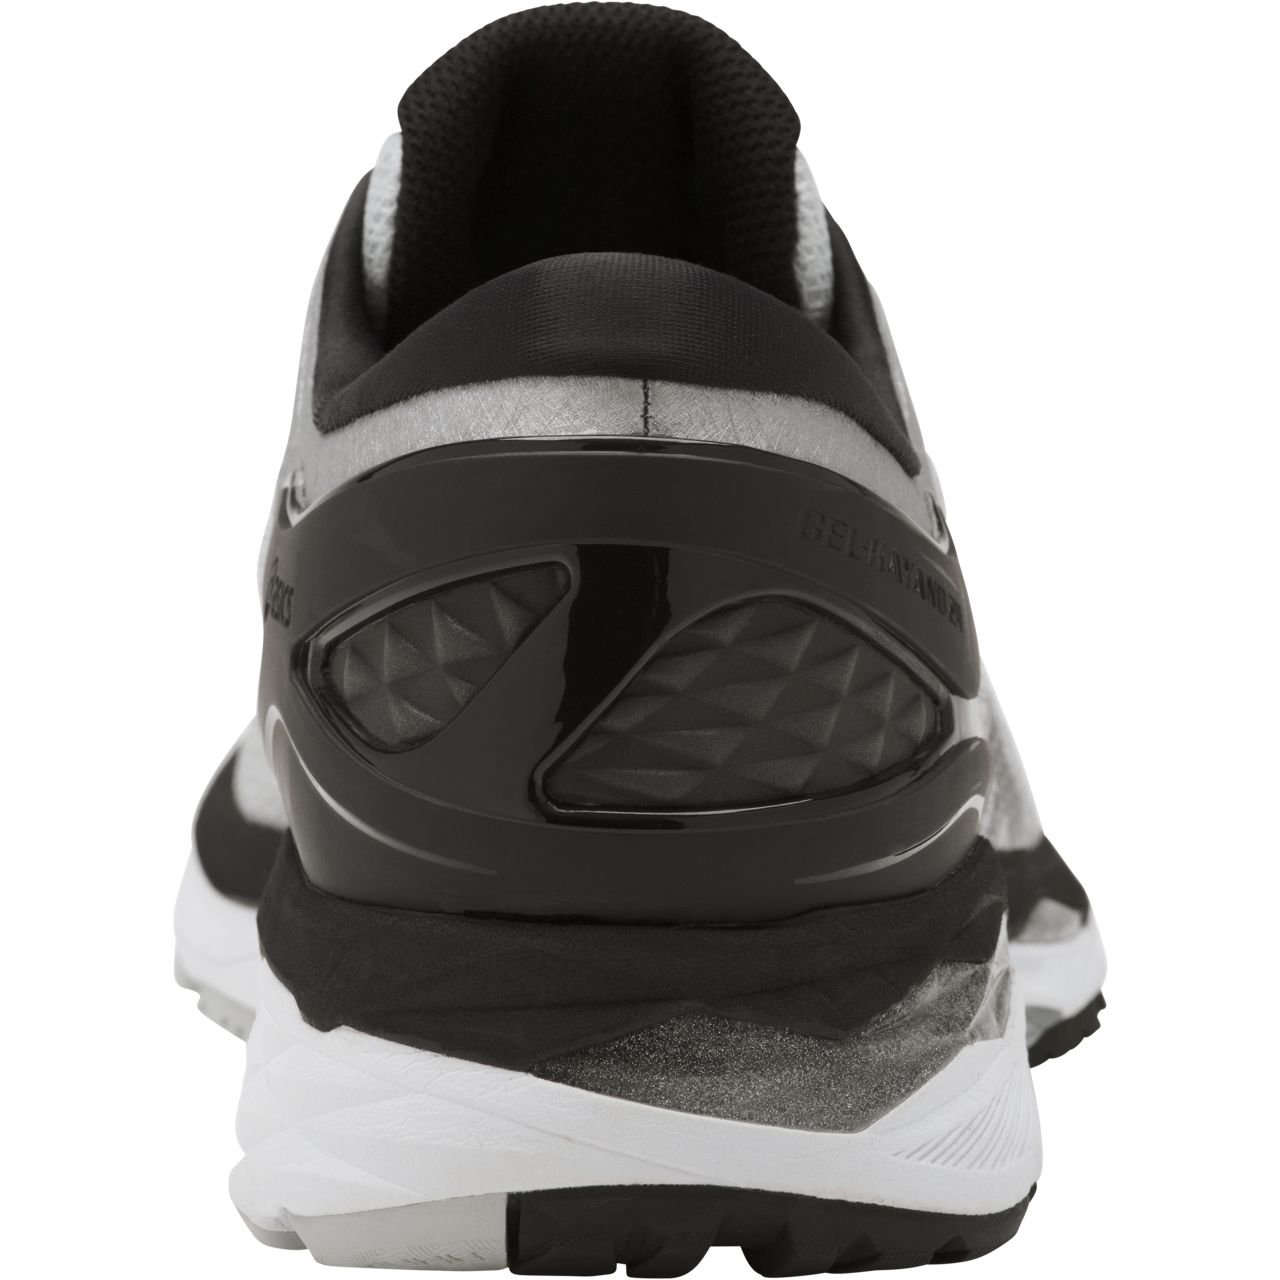 ASICS Mens Gel-Kayano 24 Running Shoe, Silver/Black/Mid Grey, 6 2E US by ASICS (Image #3)